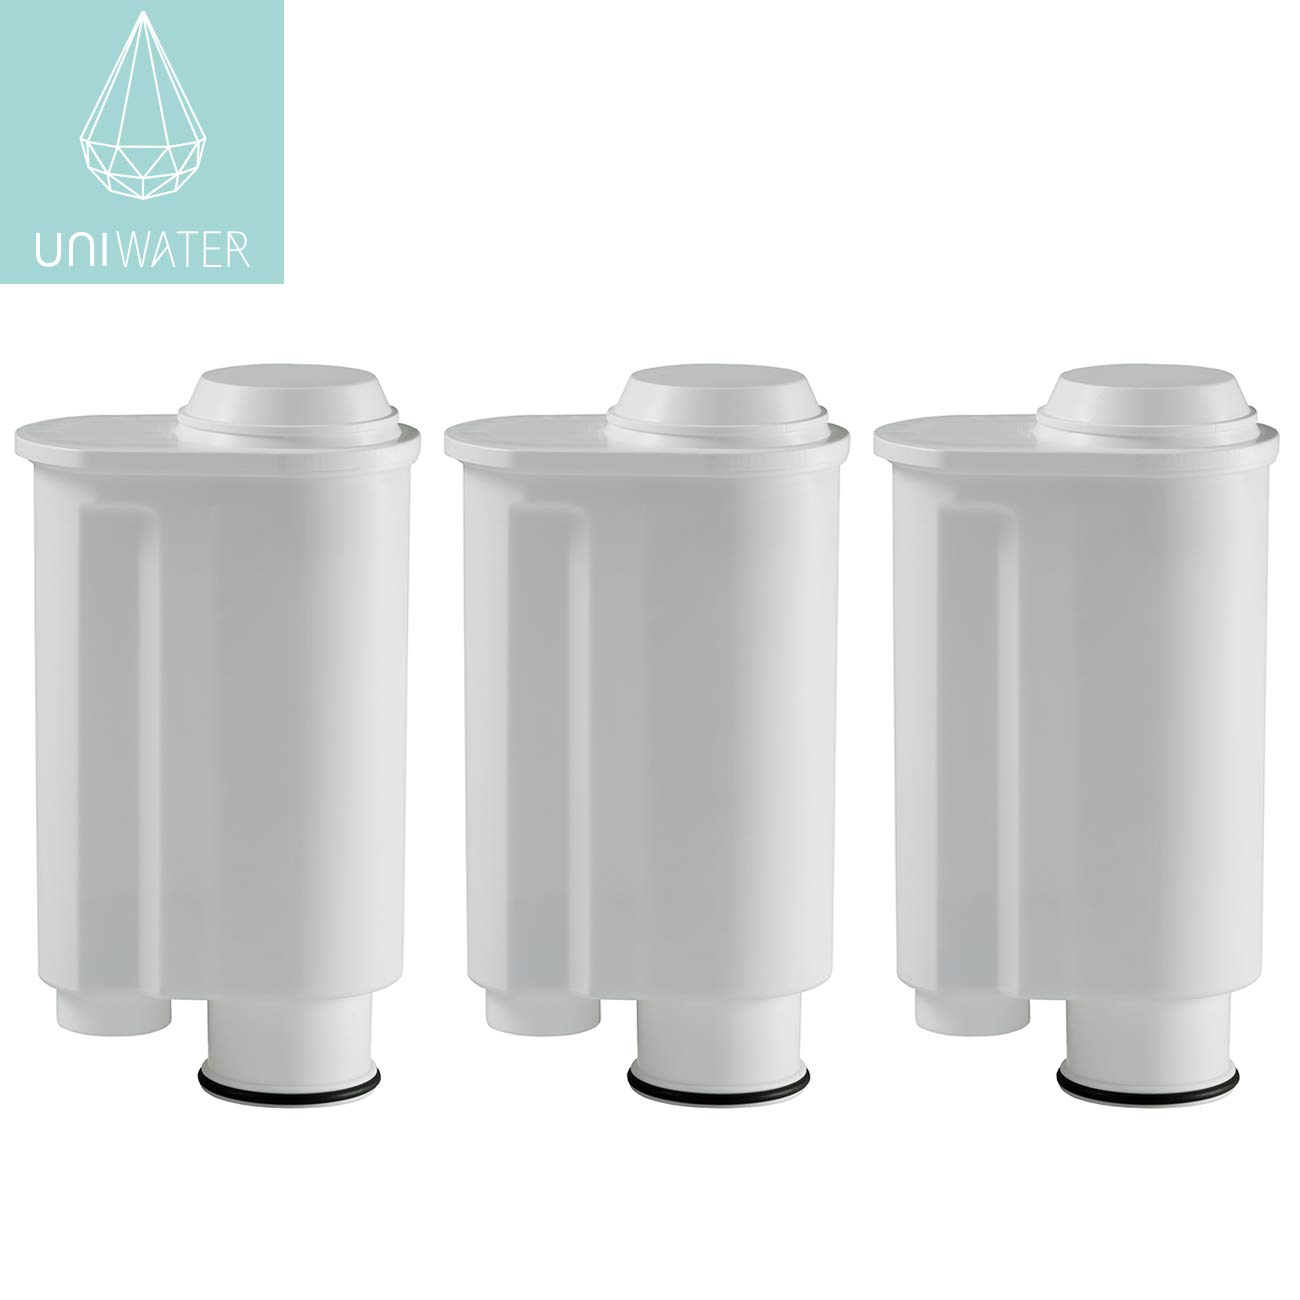 3x Water Filter Cartridges for Saeco Philips Intenza and Lavazza Gaggia coffee machines built up until 2015